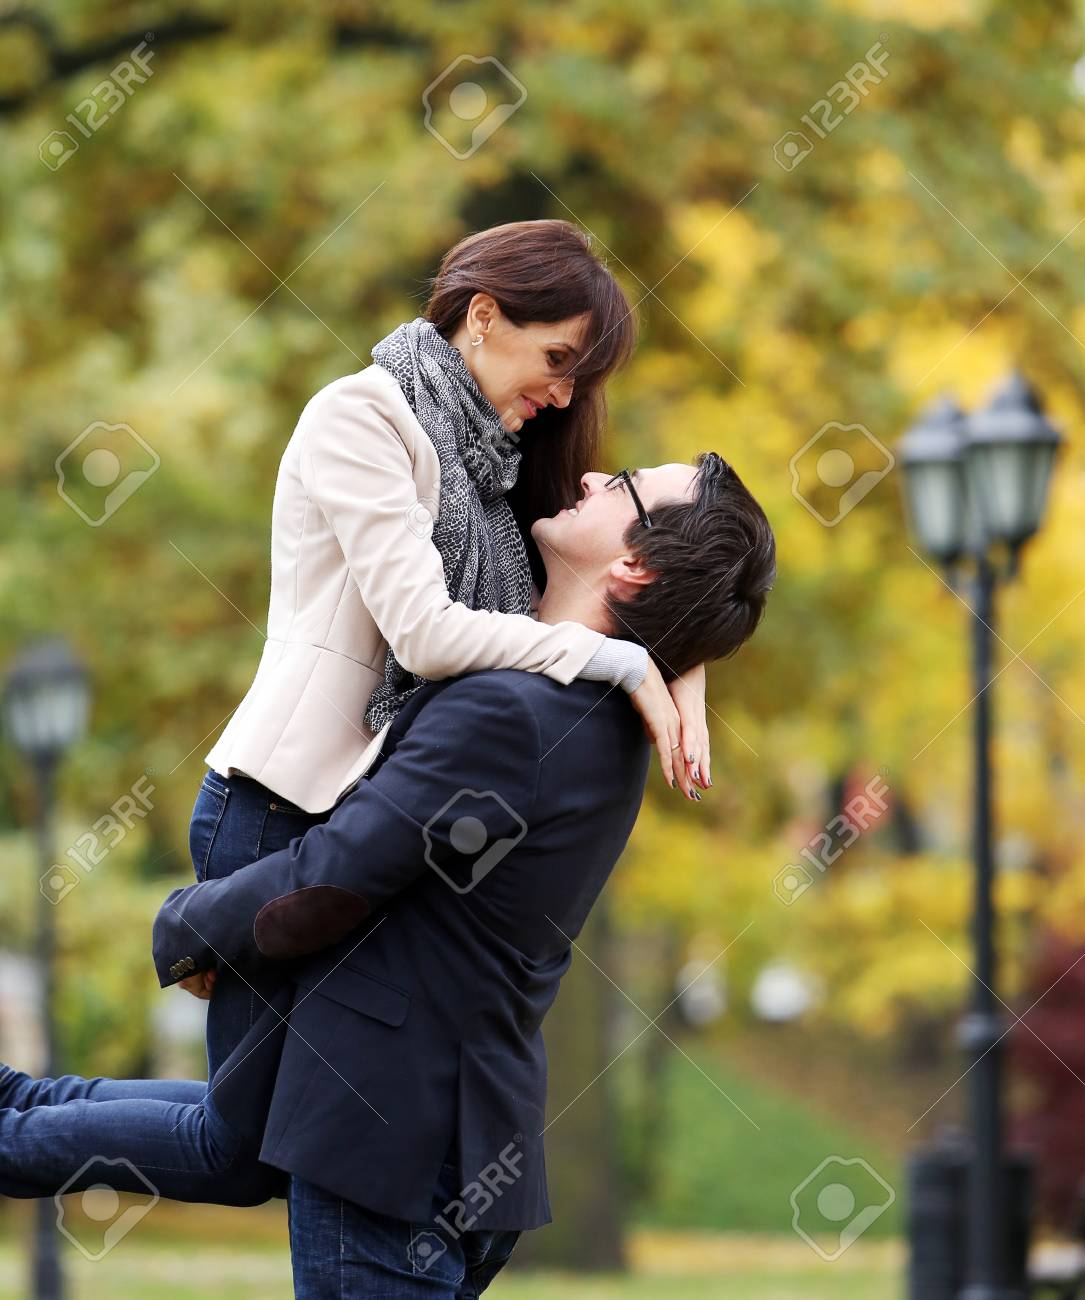 Adult couple having fun in the park Stock Photo - 25878930